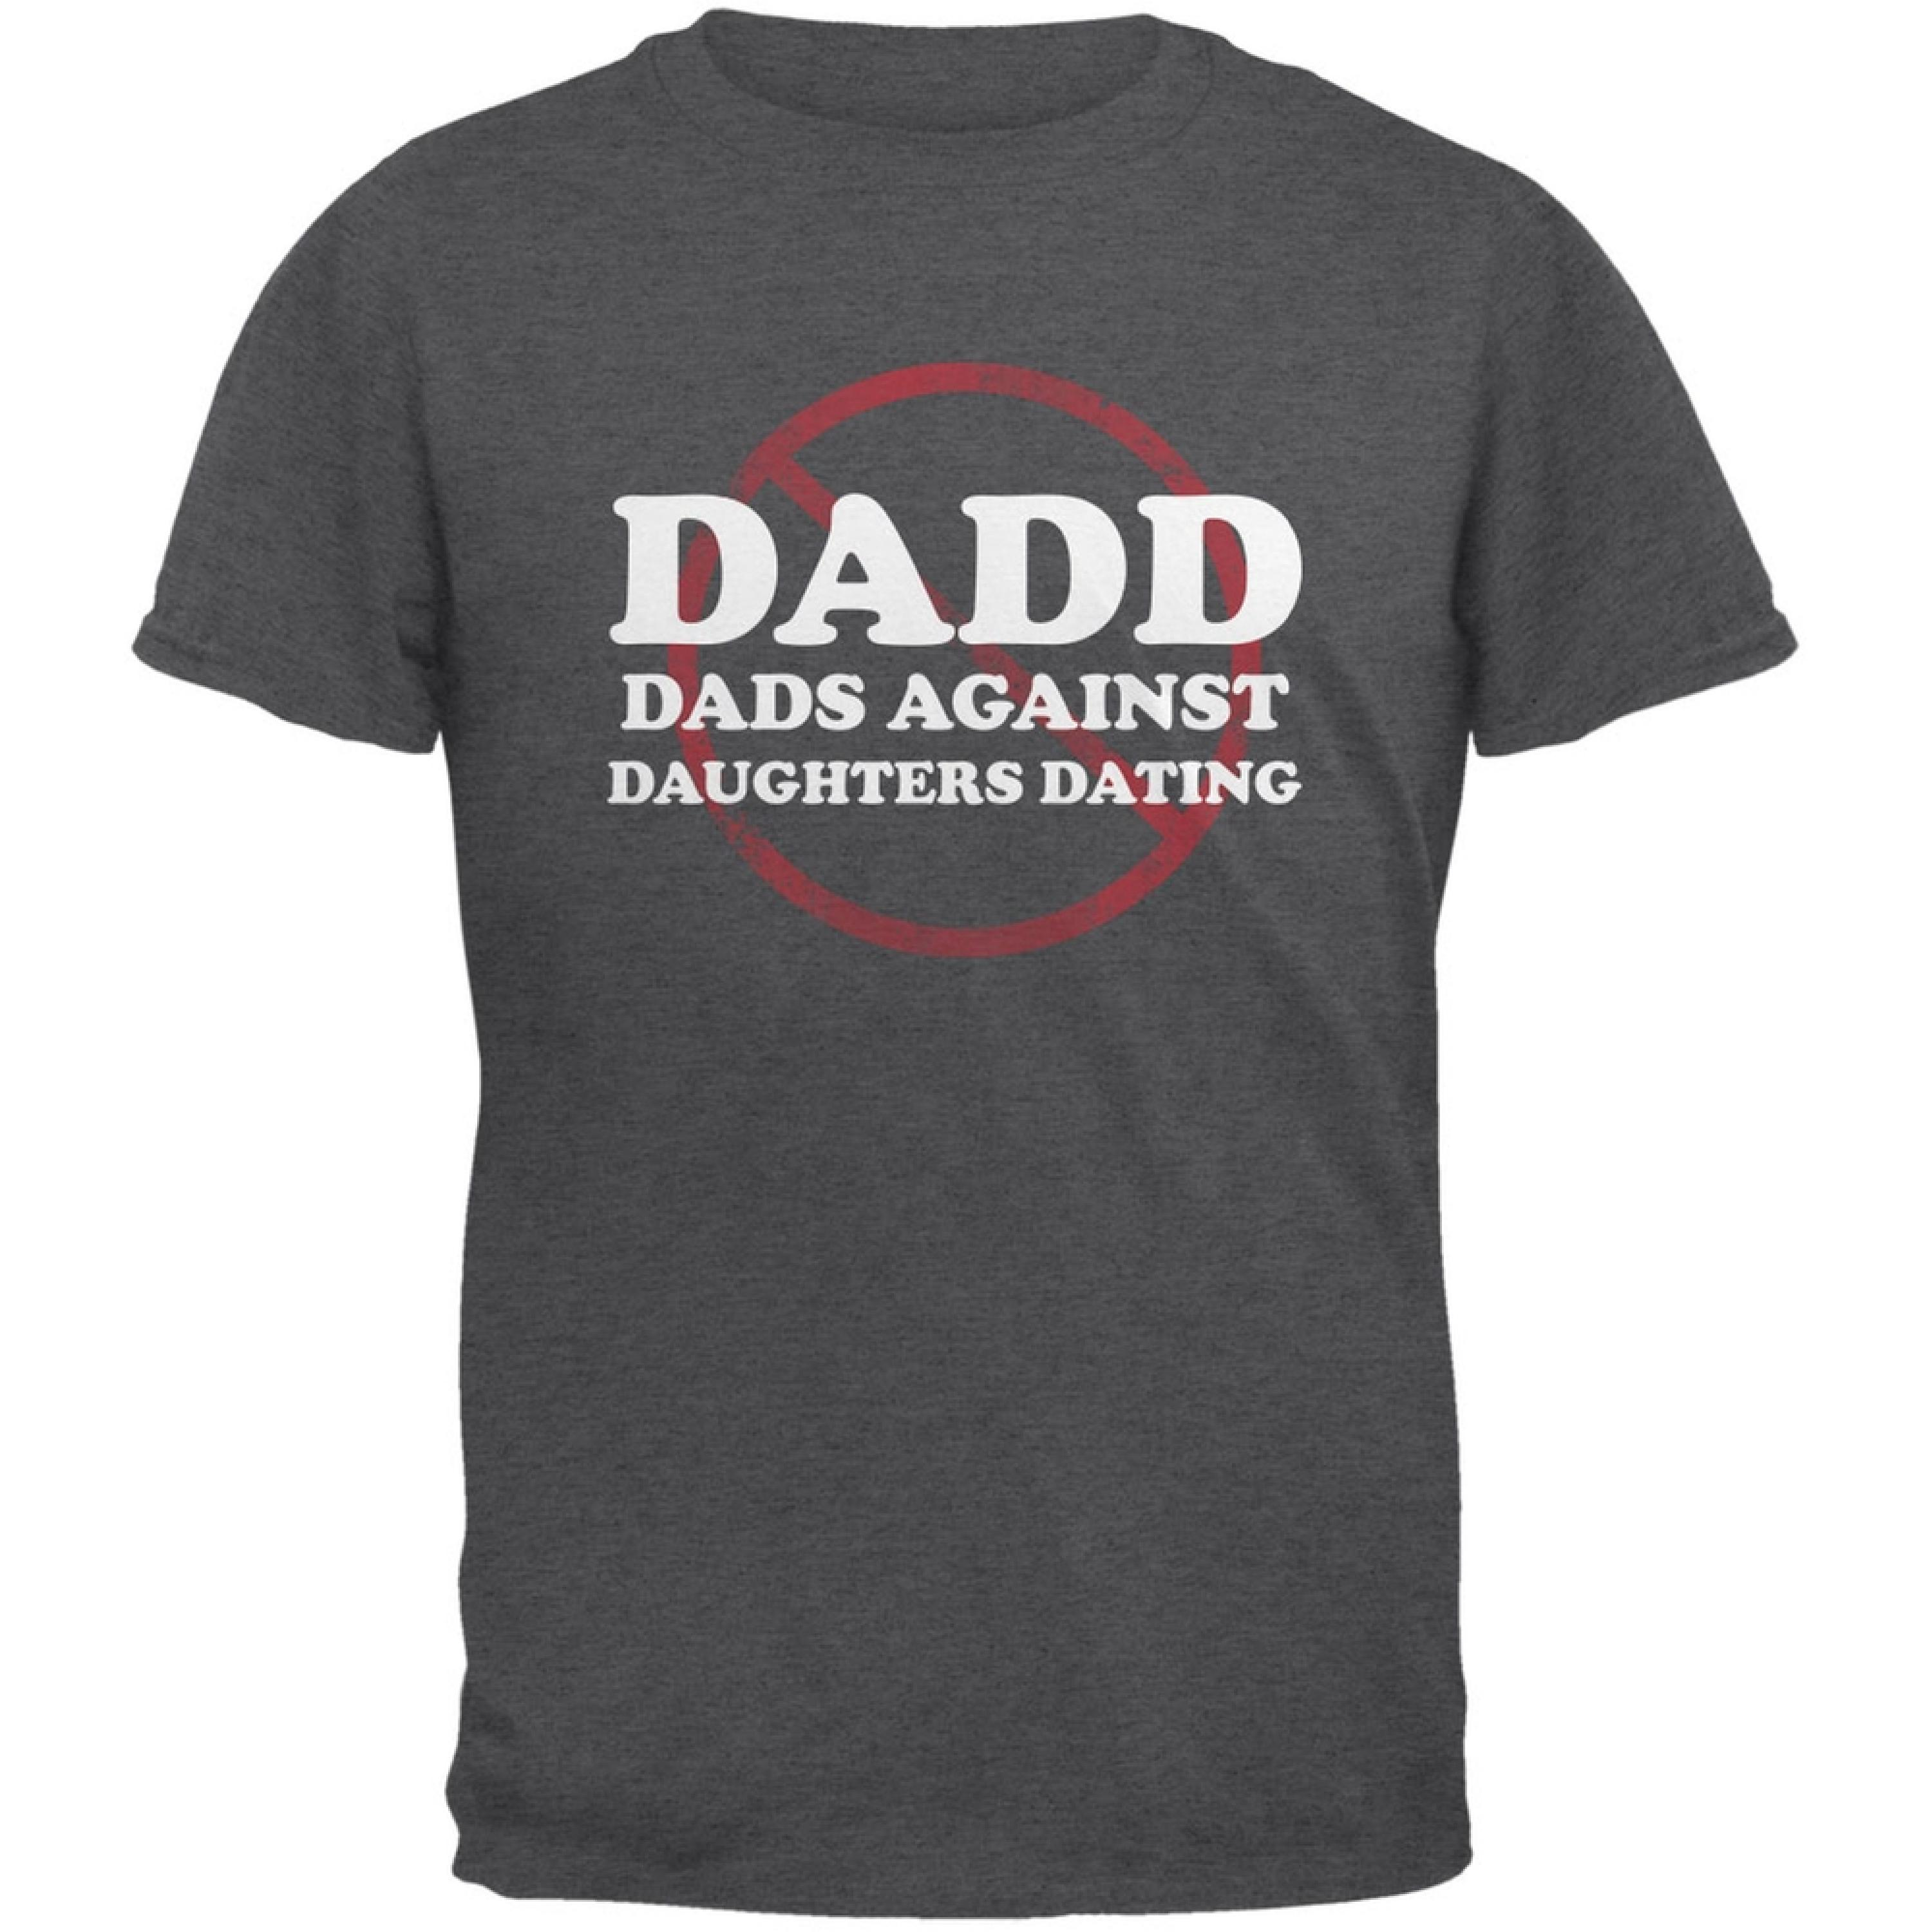 Against Daughters Walmart Dads Shirt Dating T